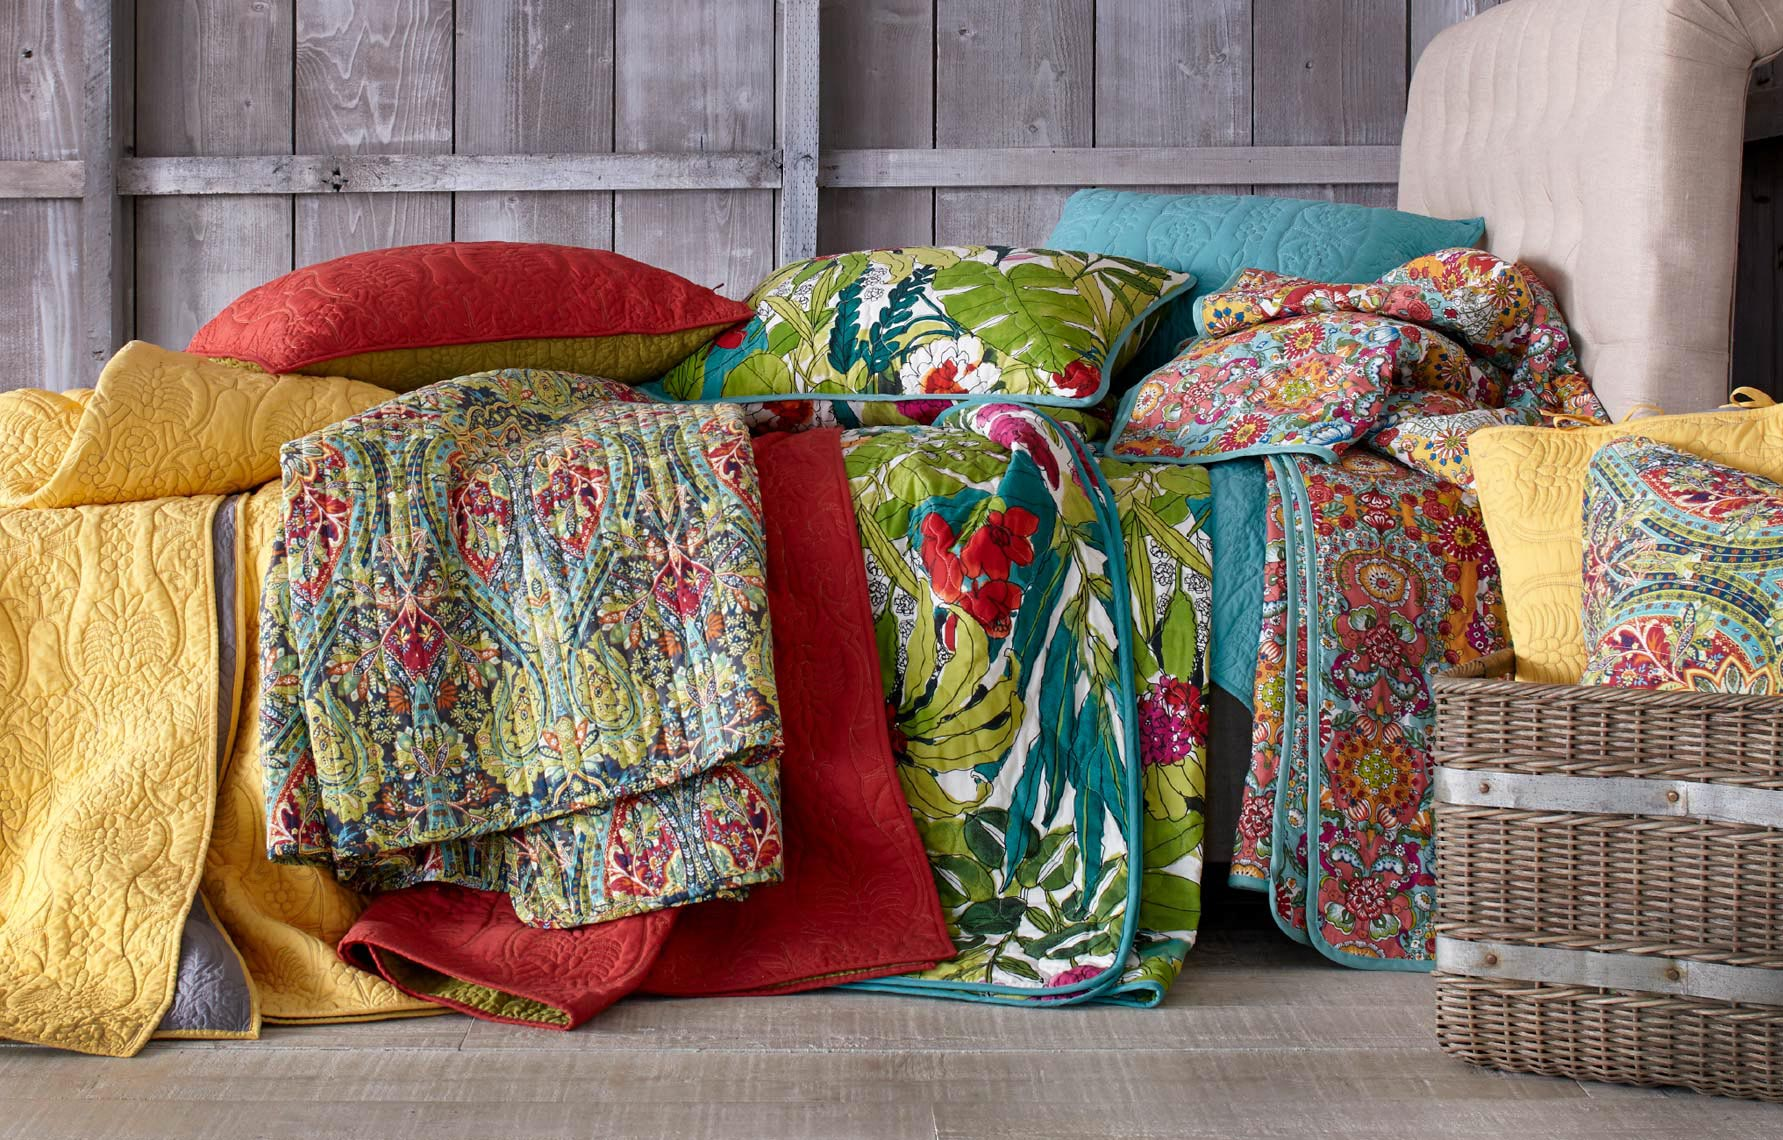 bed with colorful array of patterned quilts with wooden barn door